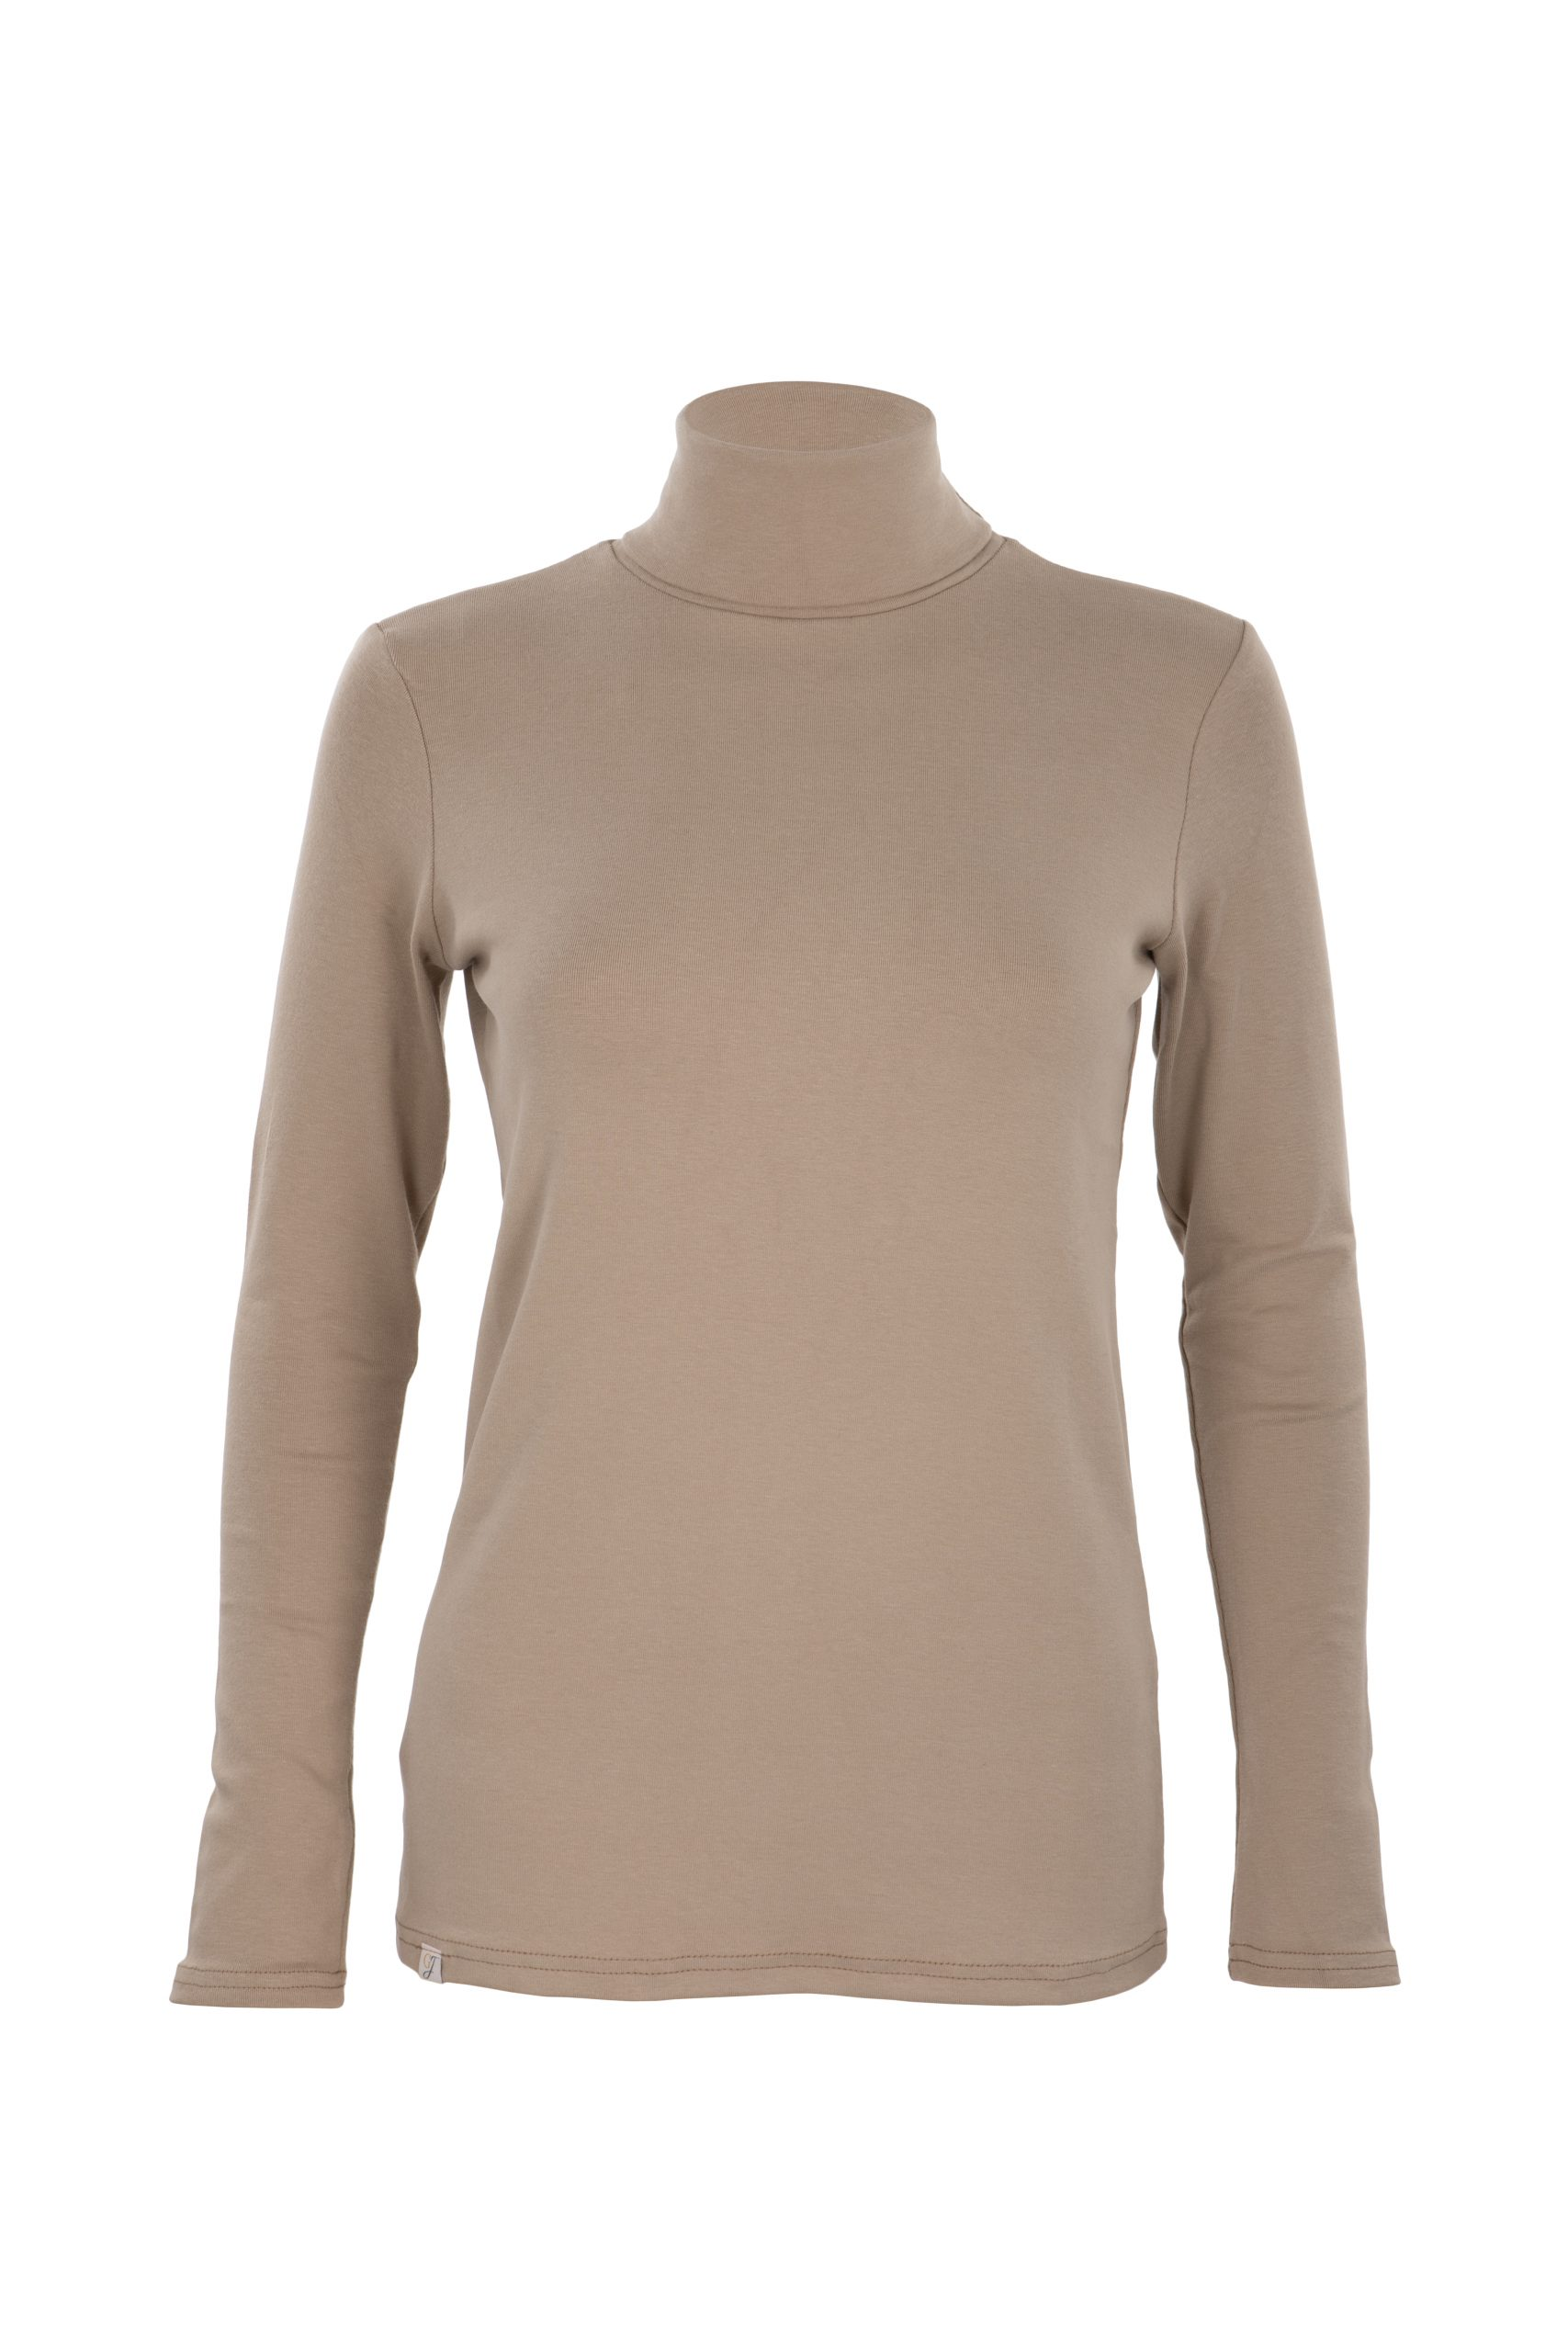 sustainable country clothing - camel roll neck